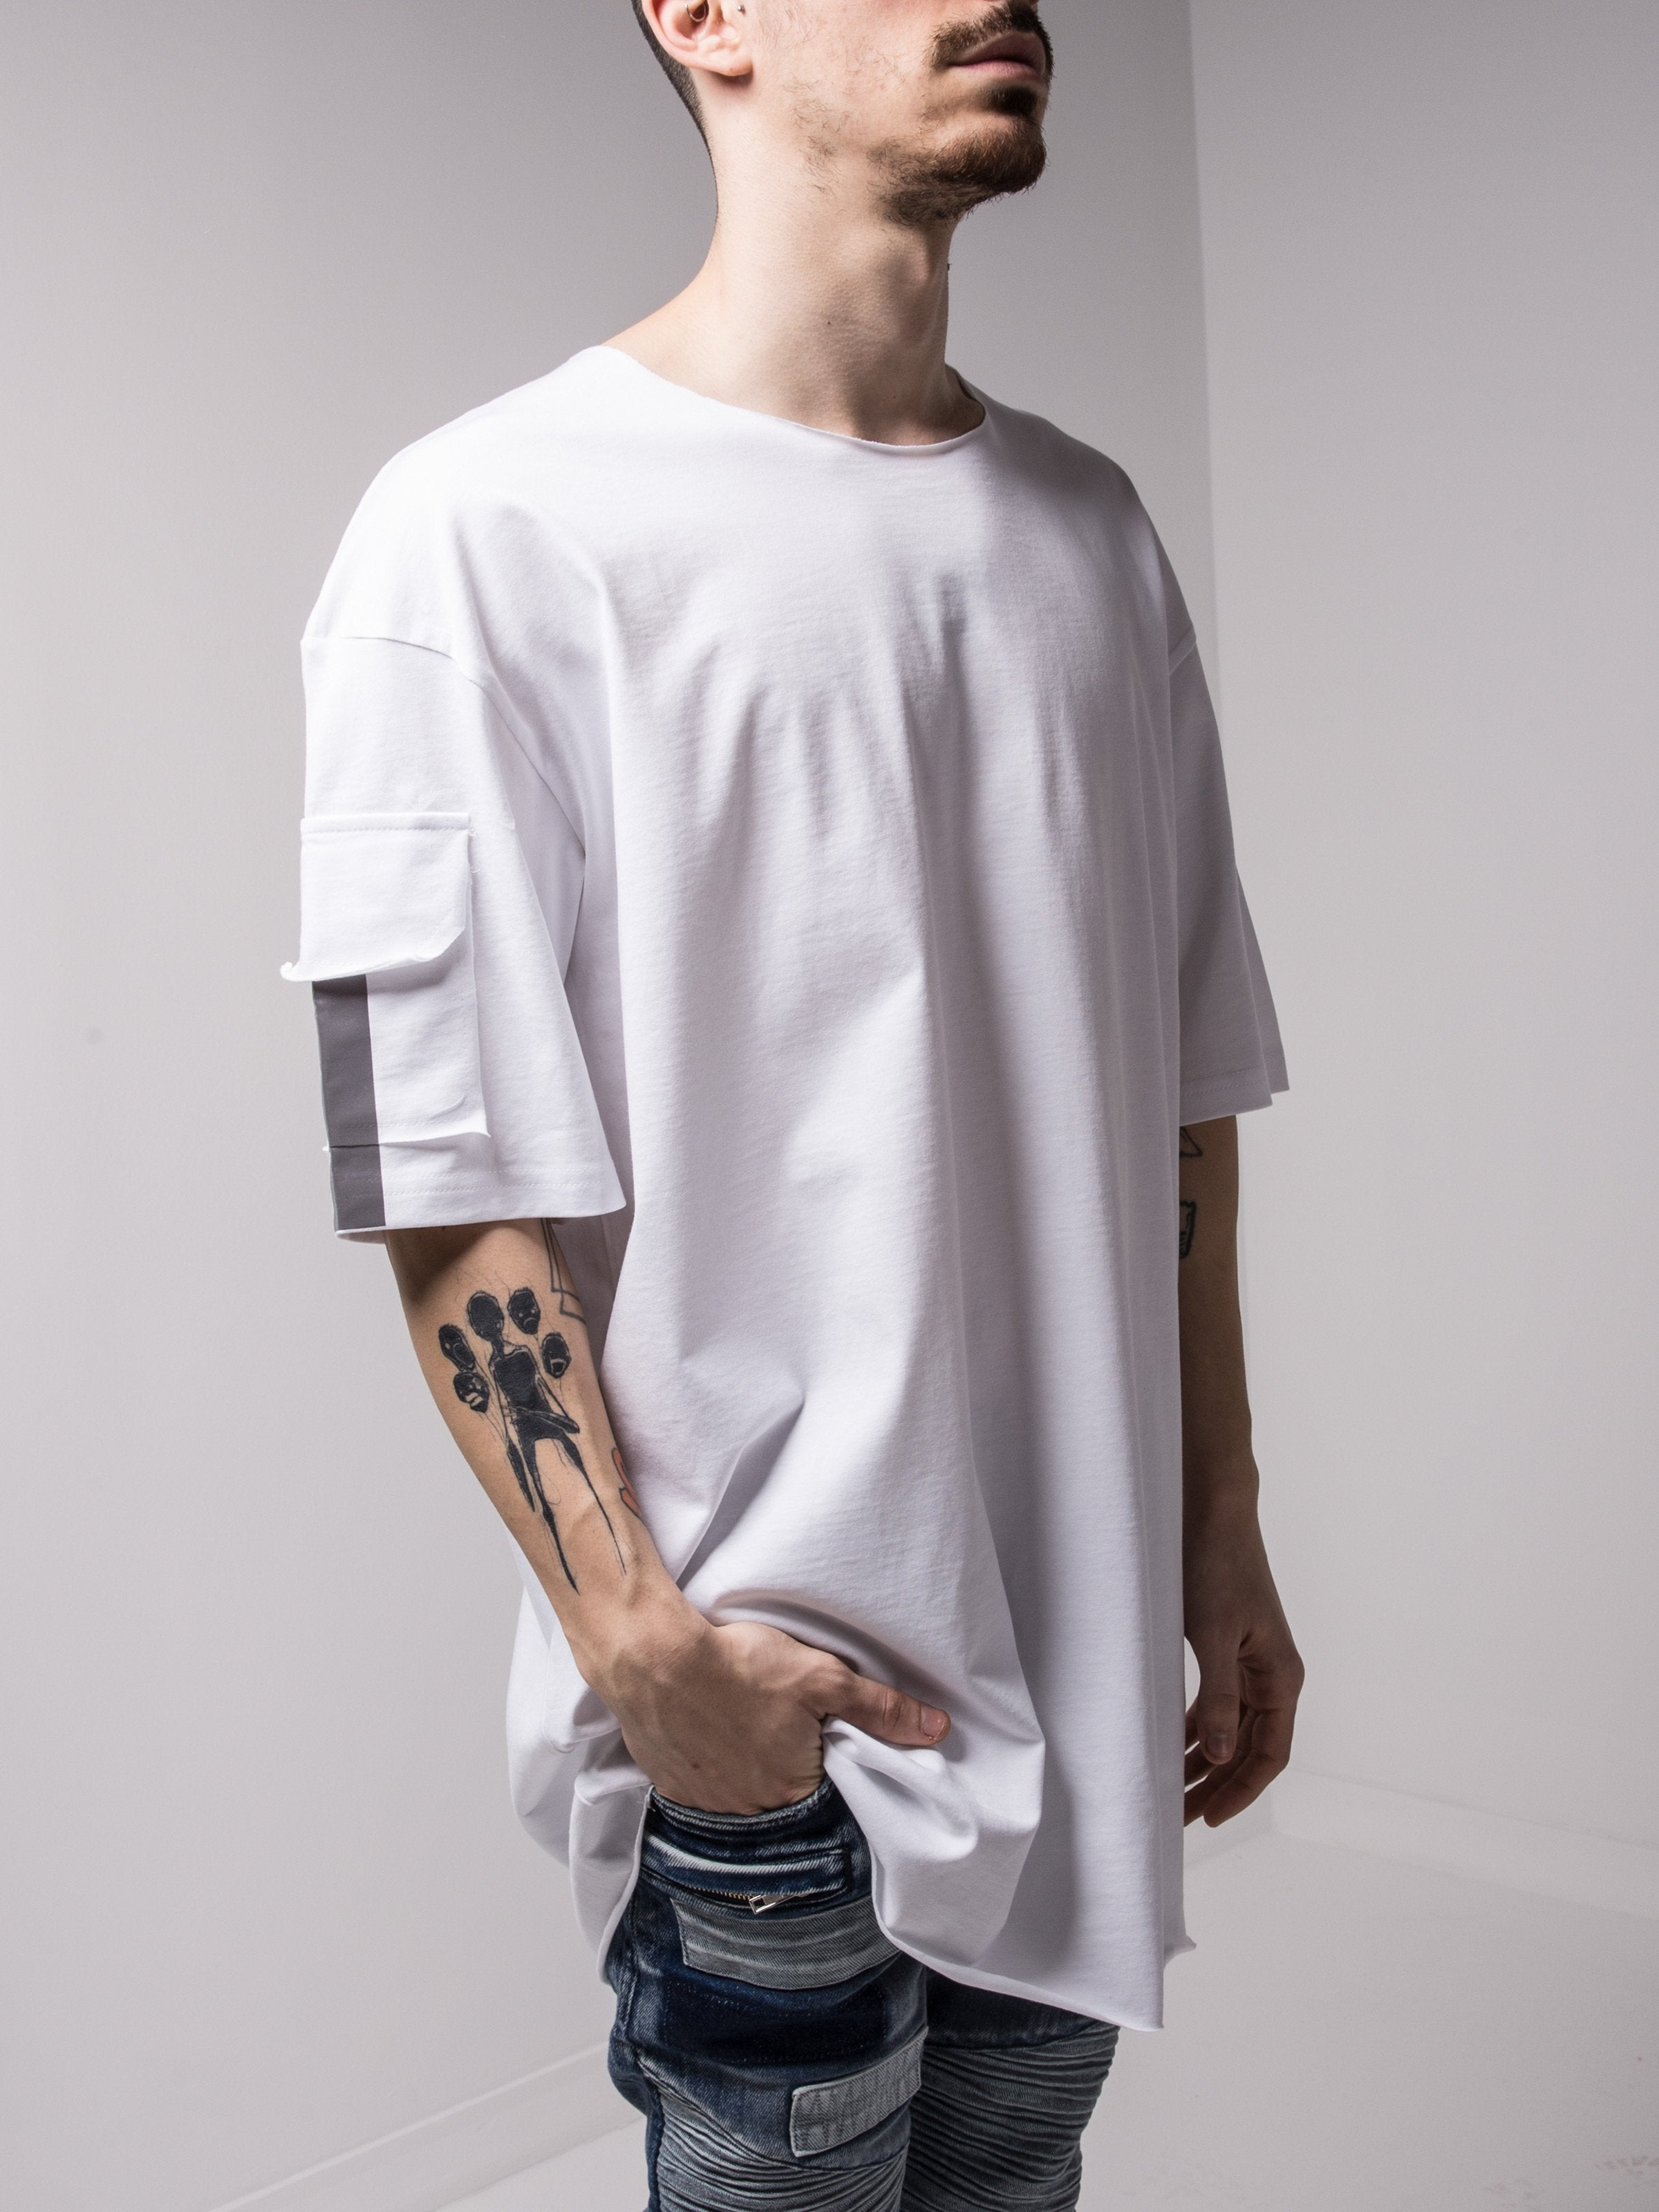 Big Back Pocket T-shirt White - T-Shirts - mens streetwear